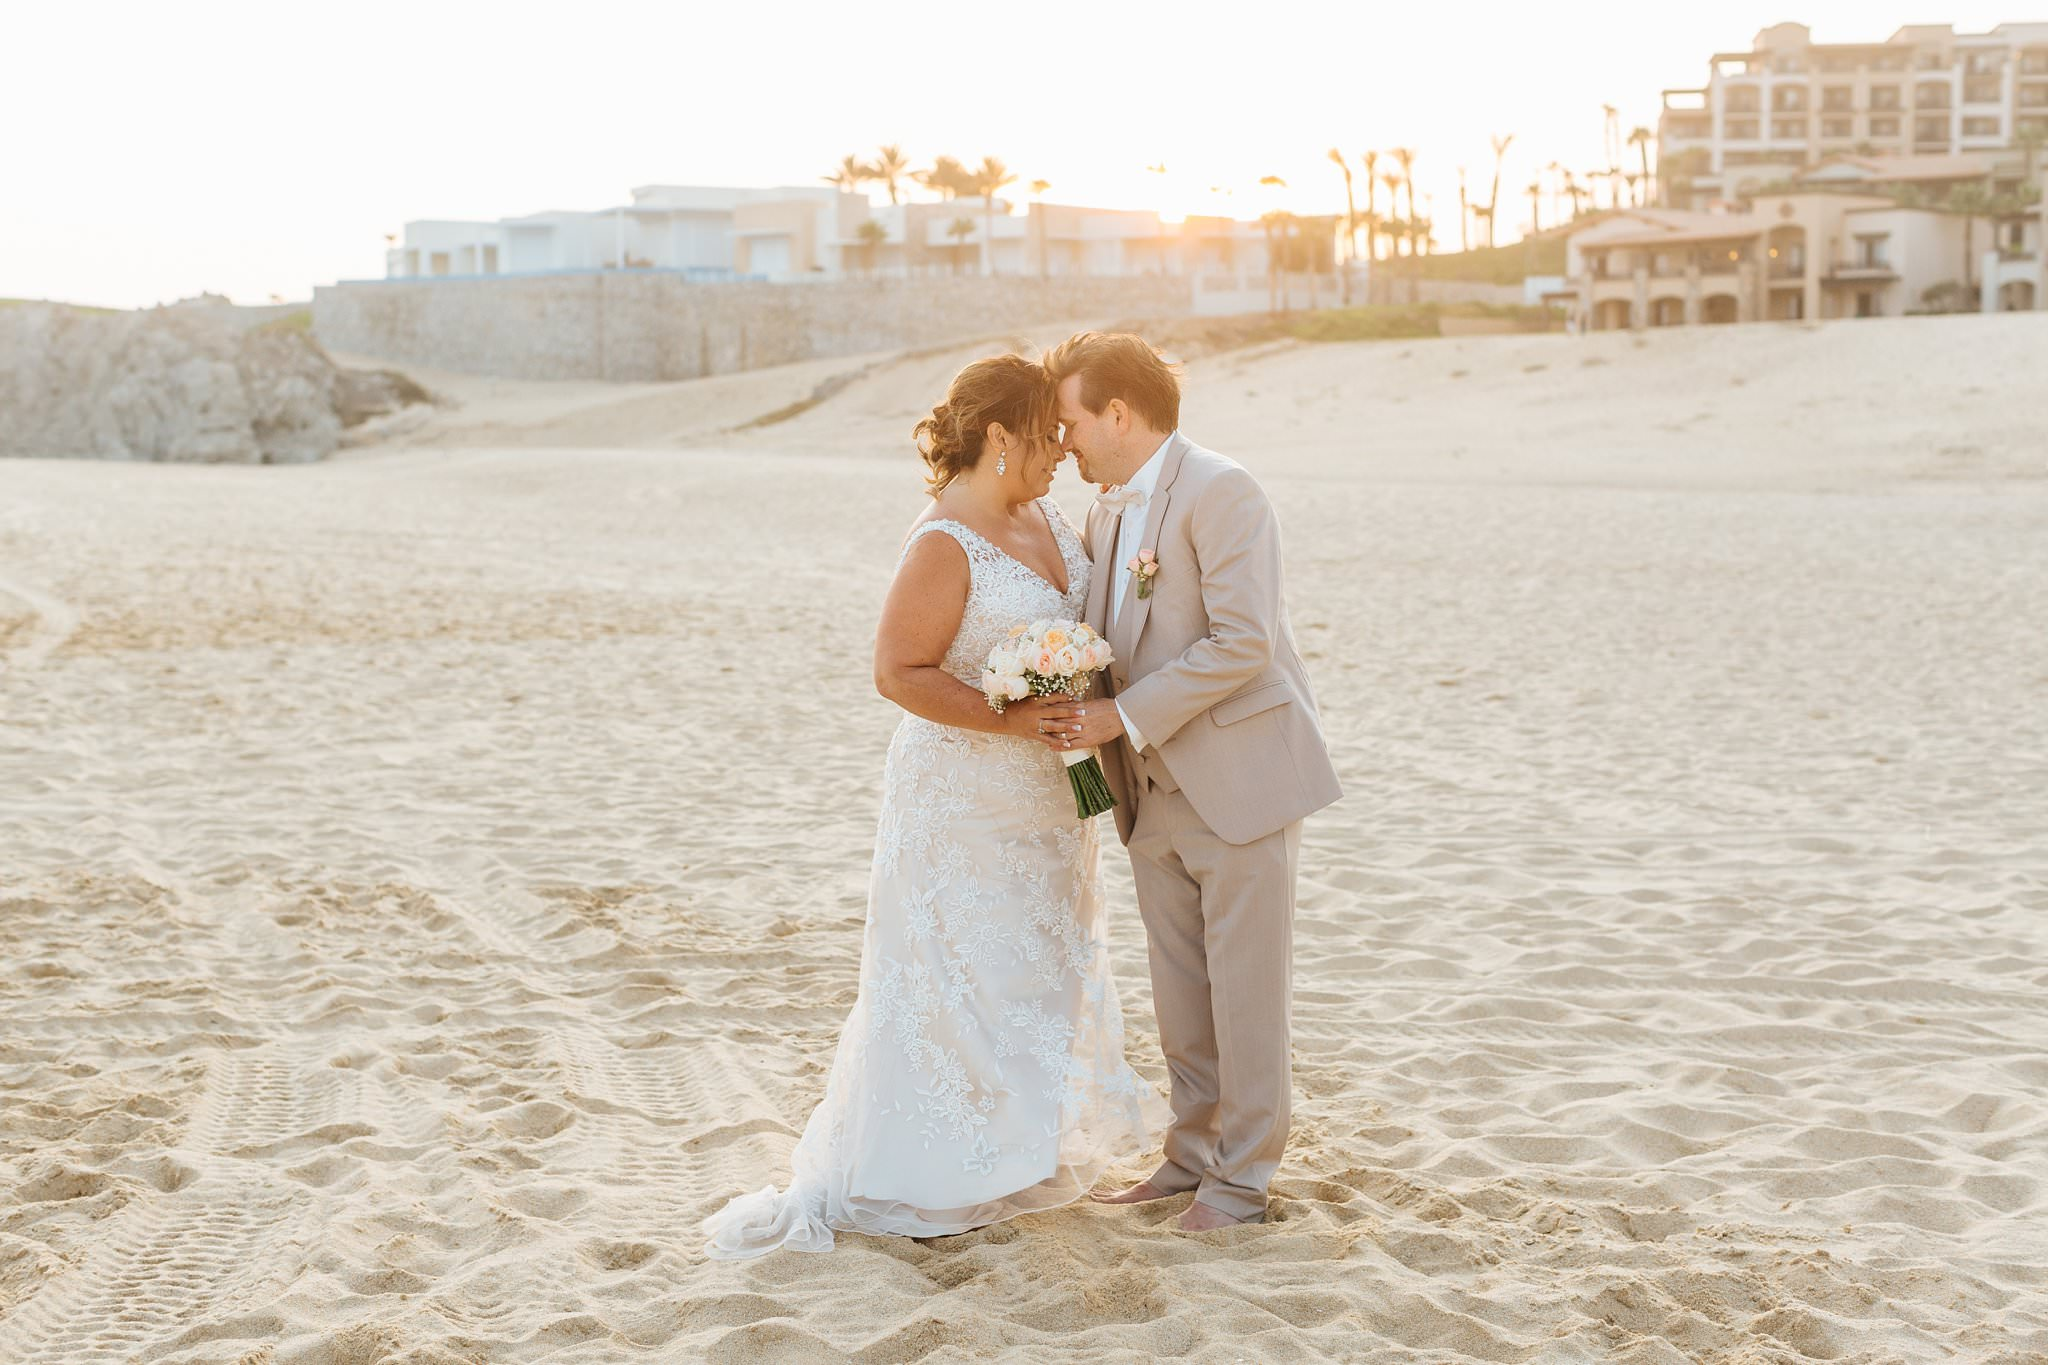 Sunset Beach Wedding Photos in Cabo, Mexico - Bride and Groom Destination Wedding - https://brittneyhannonphotography.com